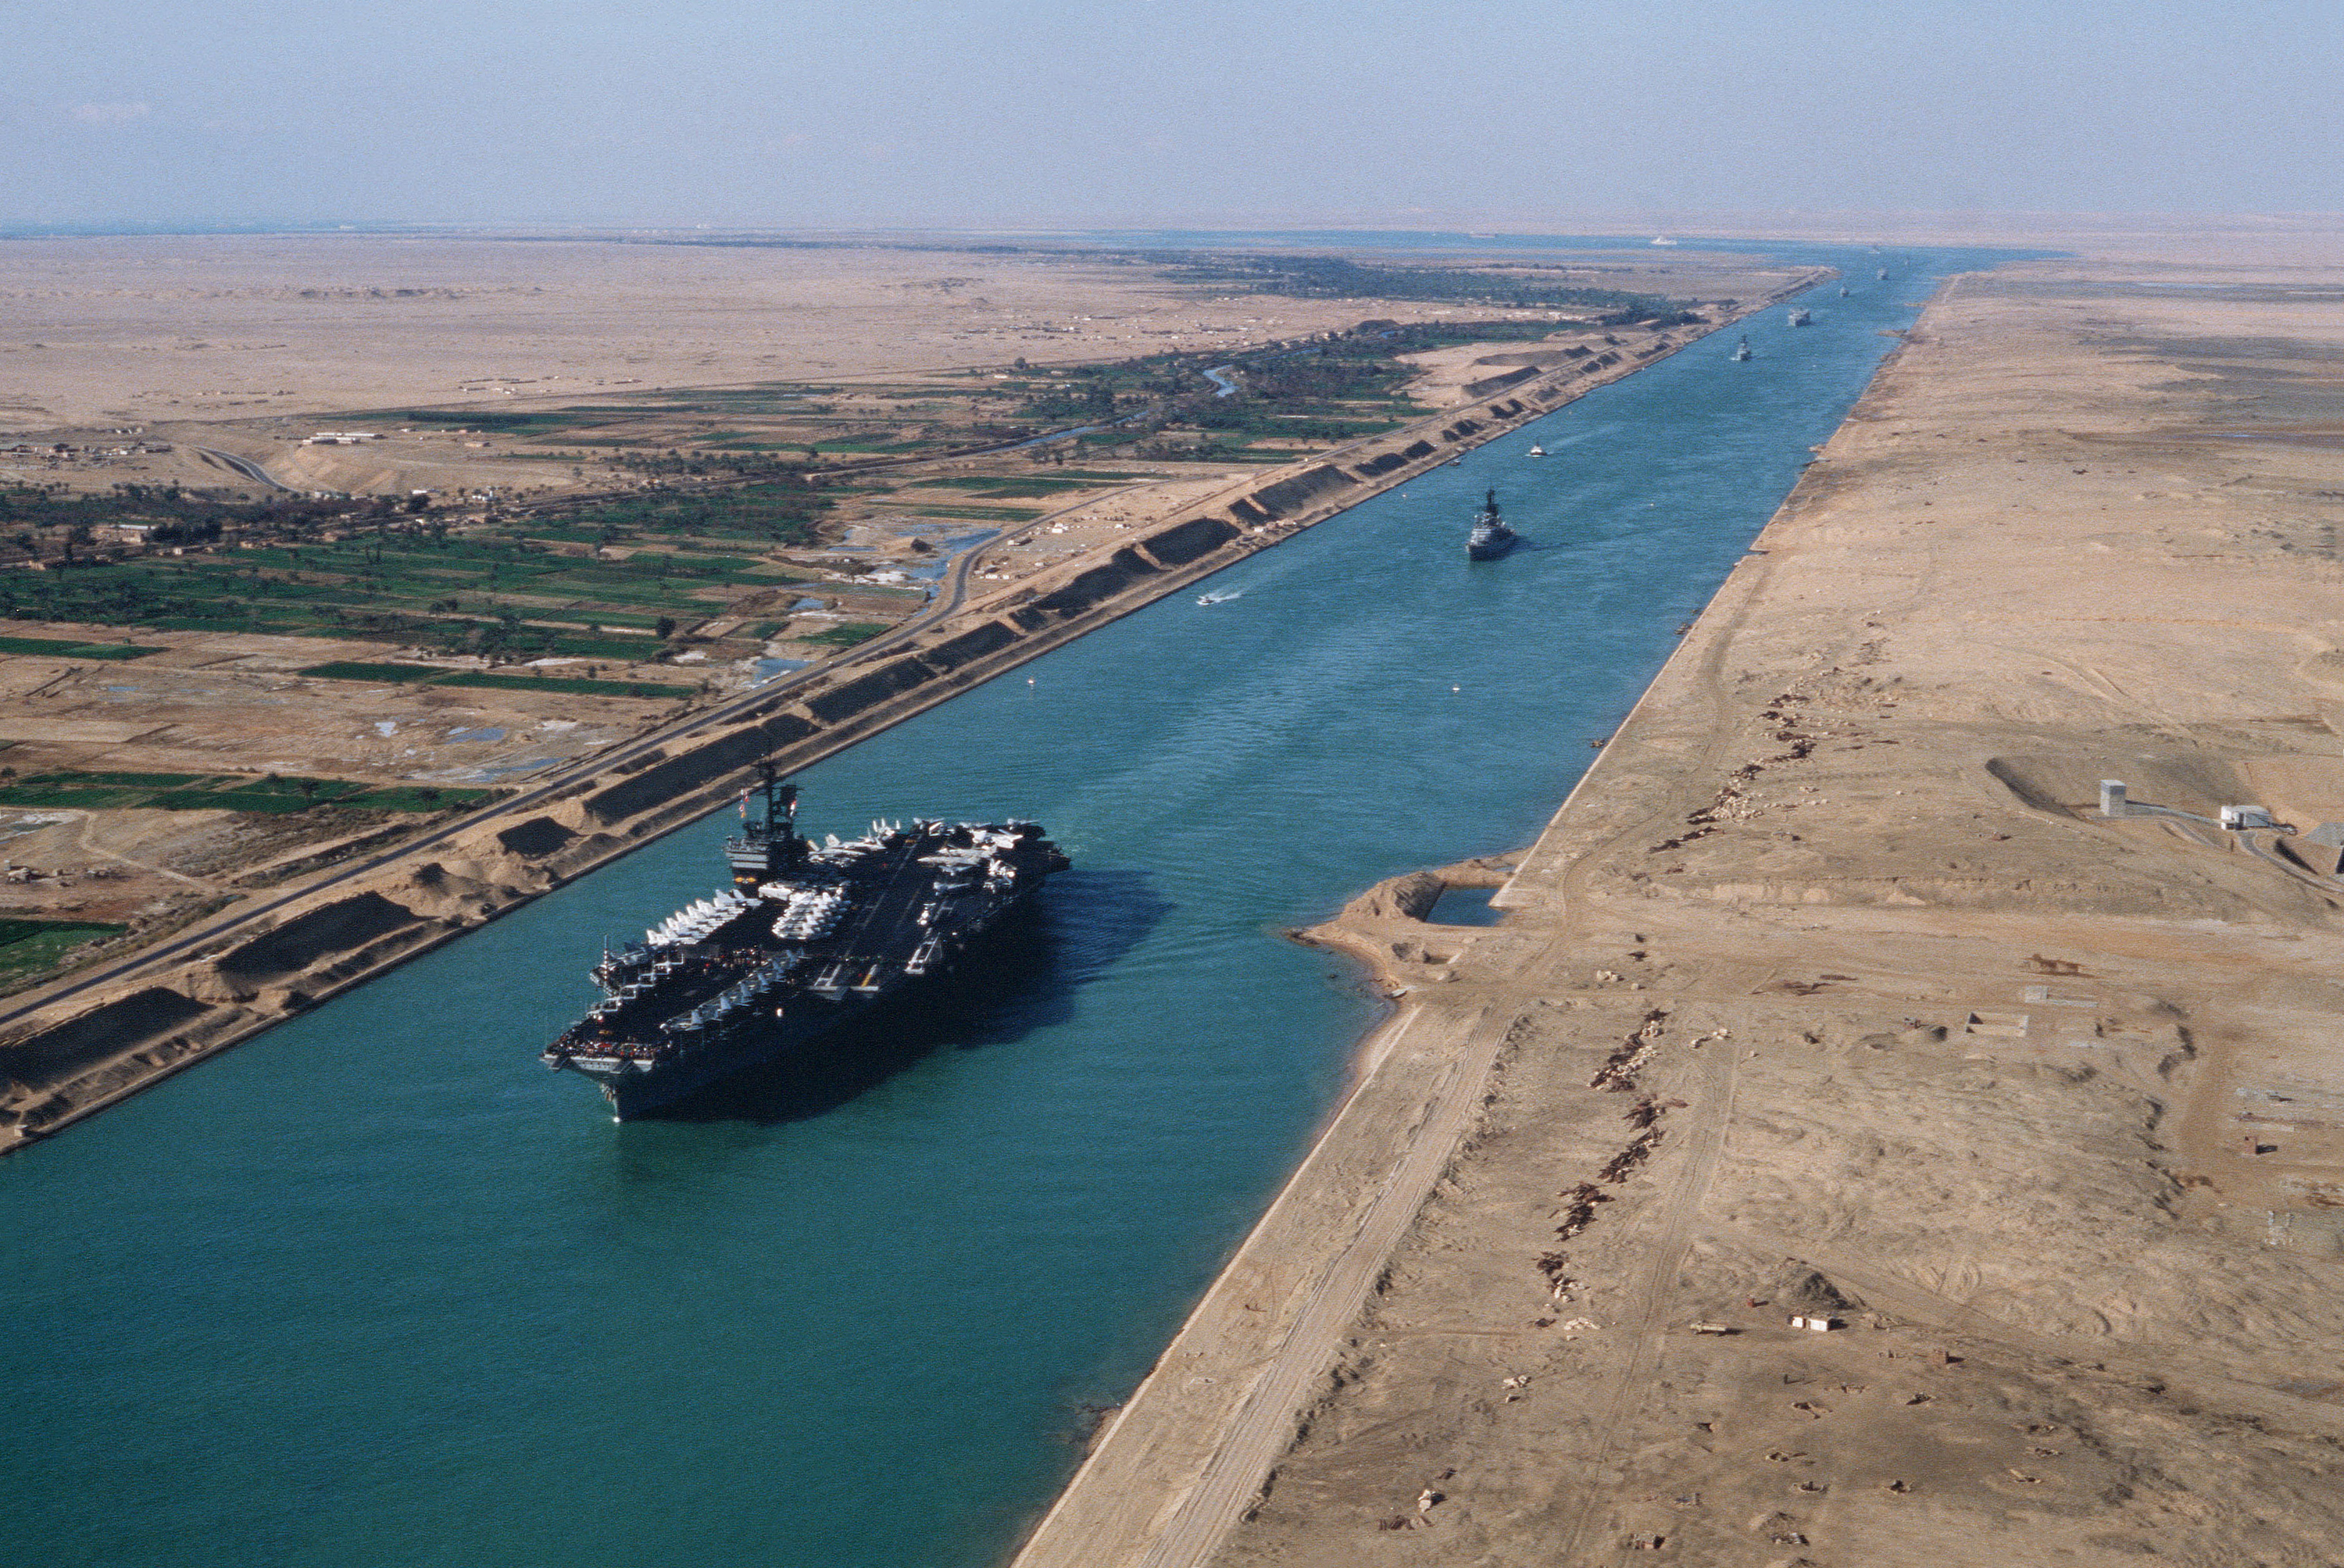 USS America (CV-66) in the Suez canal 1981.jpg